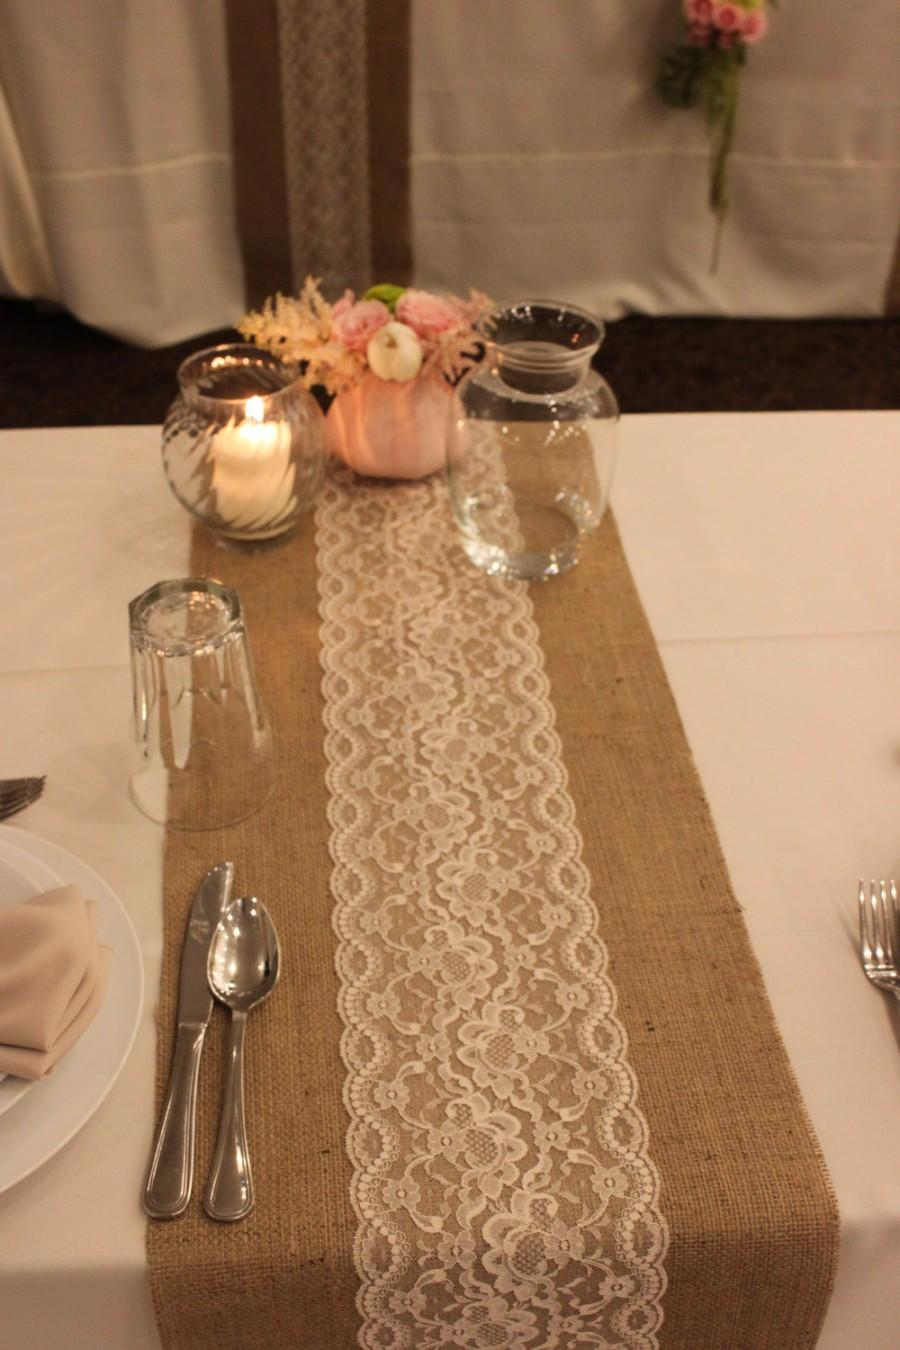 SALE 12 FT 12 X 144 Burlap Lace Table Runner Wedding Decor